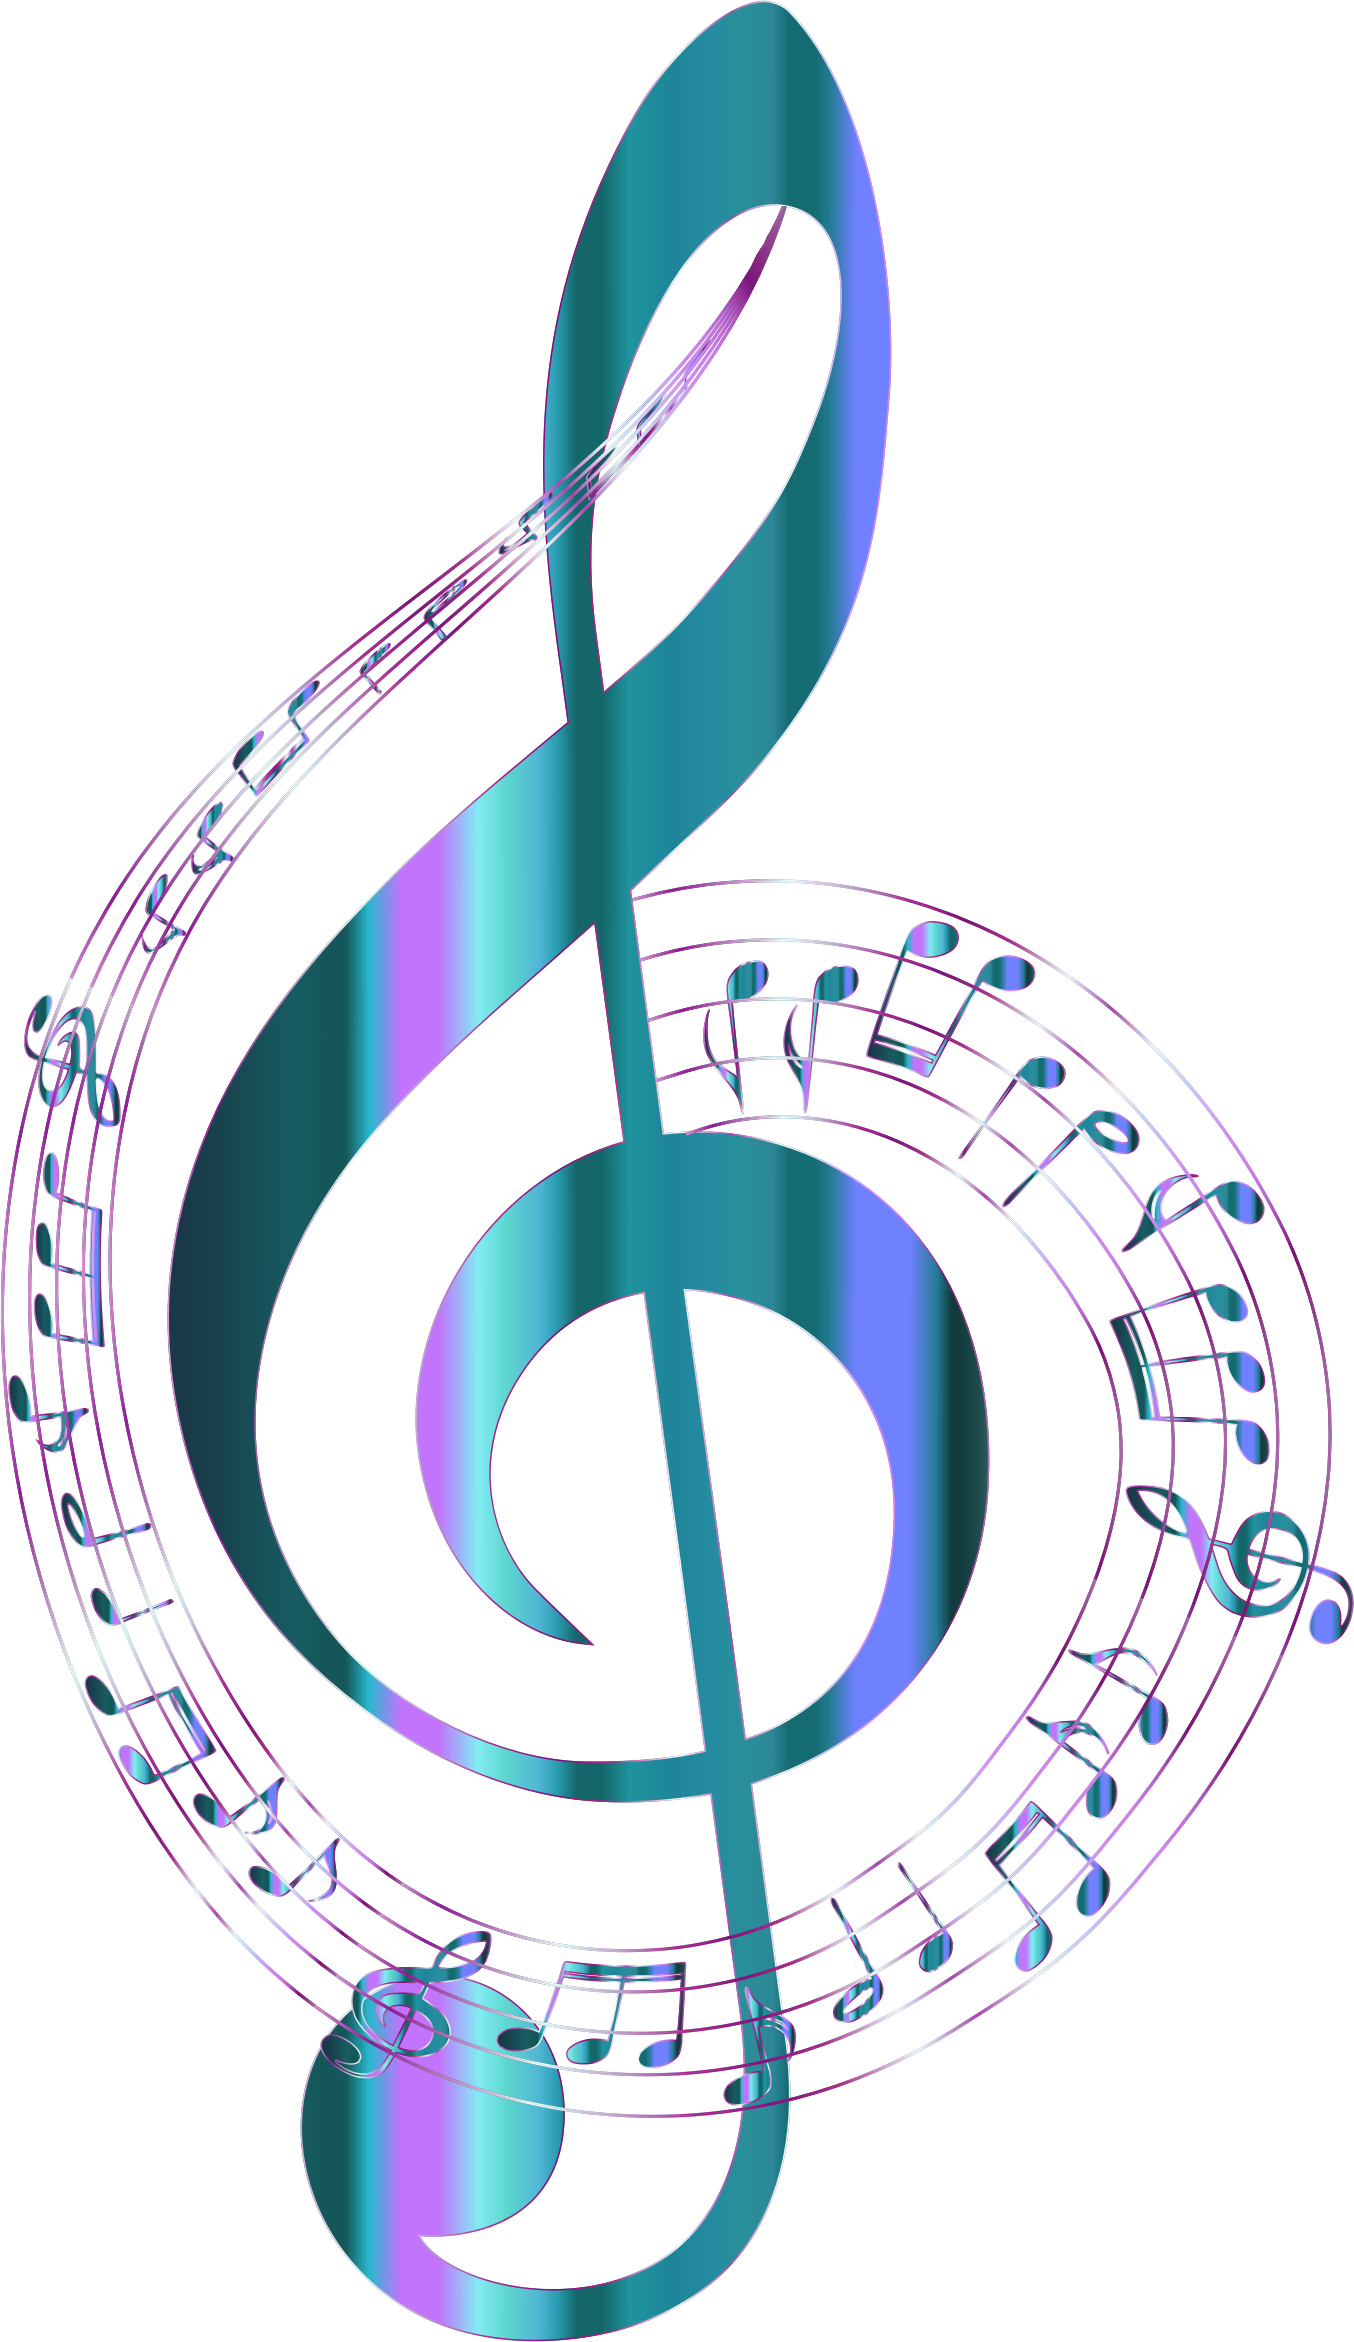 Music notes background images png free. Turquoise musical typography no